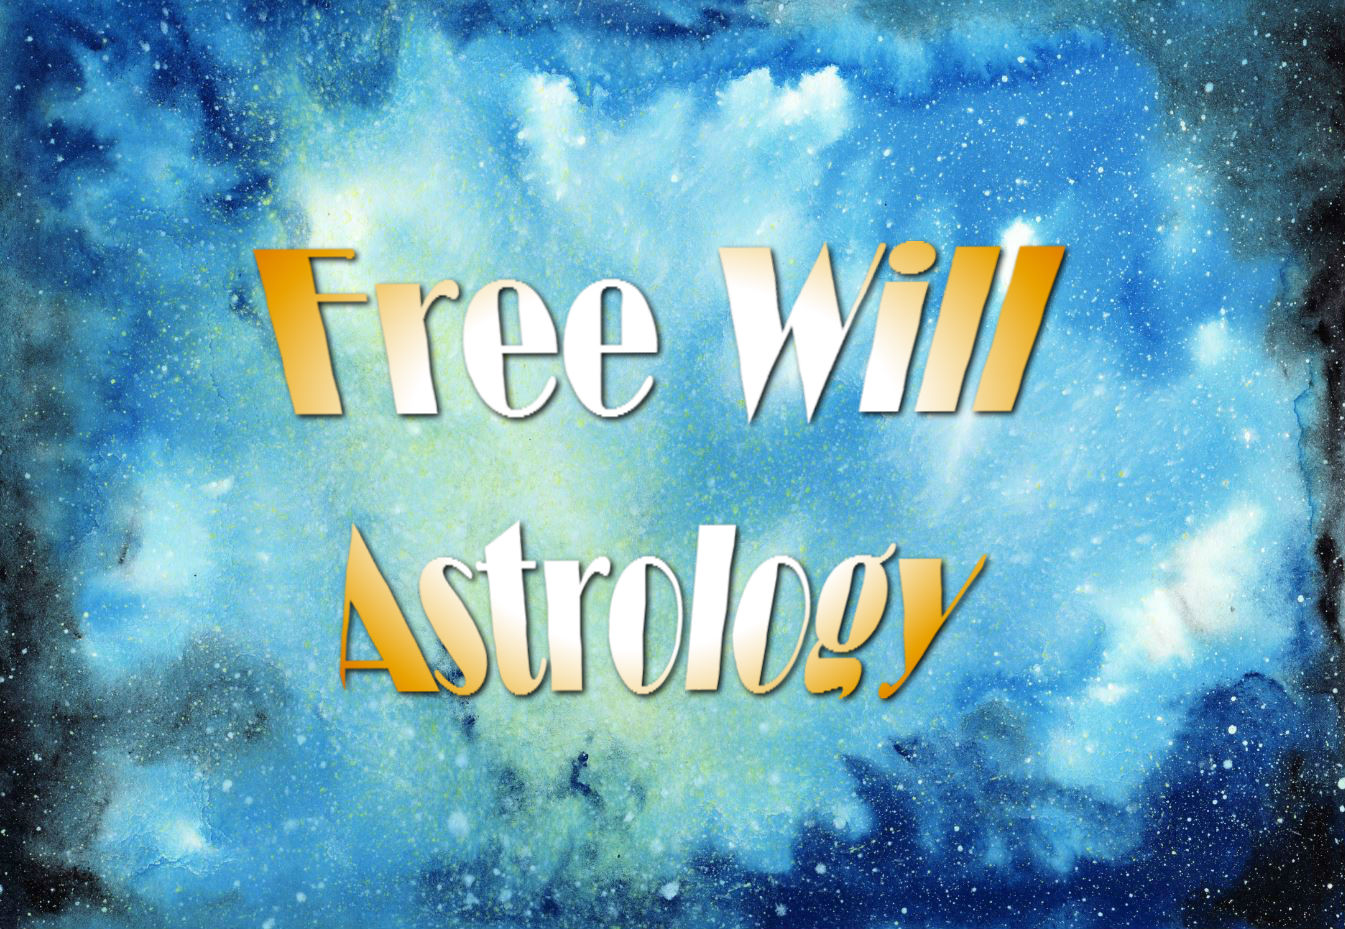 Free Will Astrology: March 30-April 5, 2017